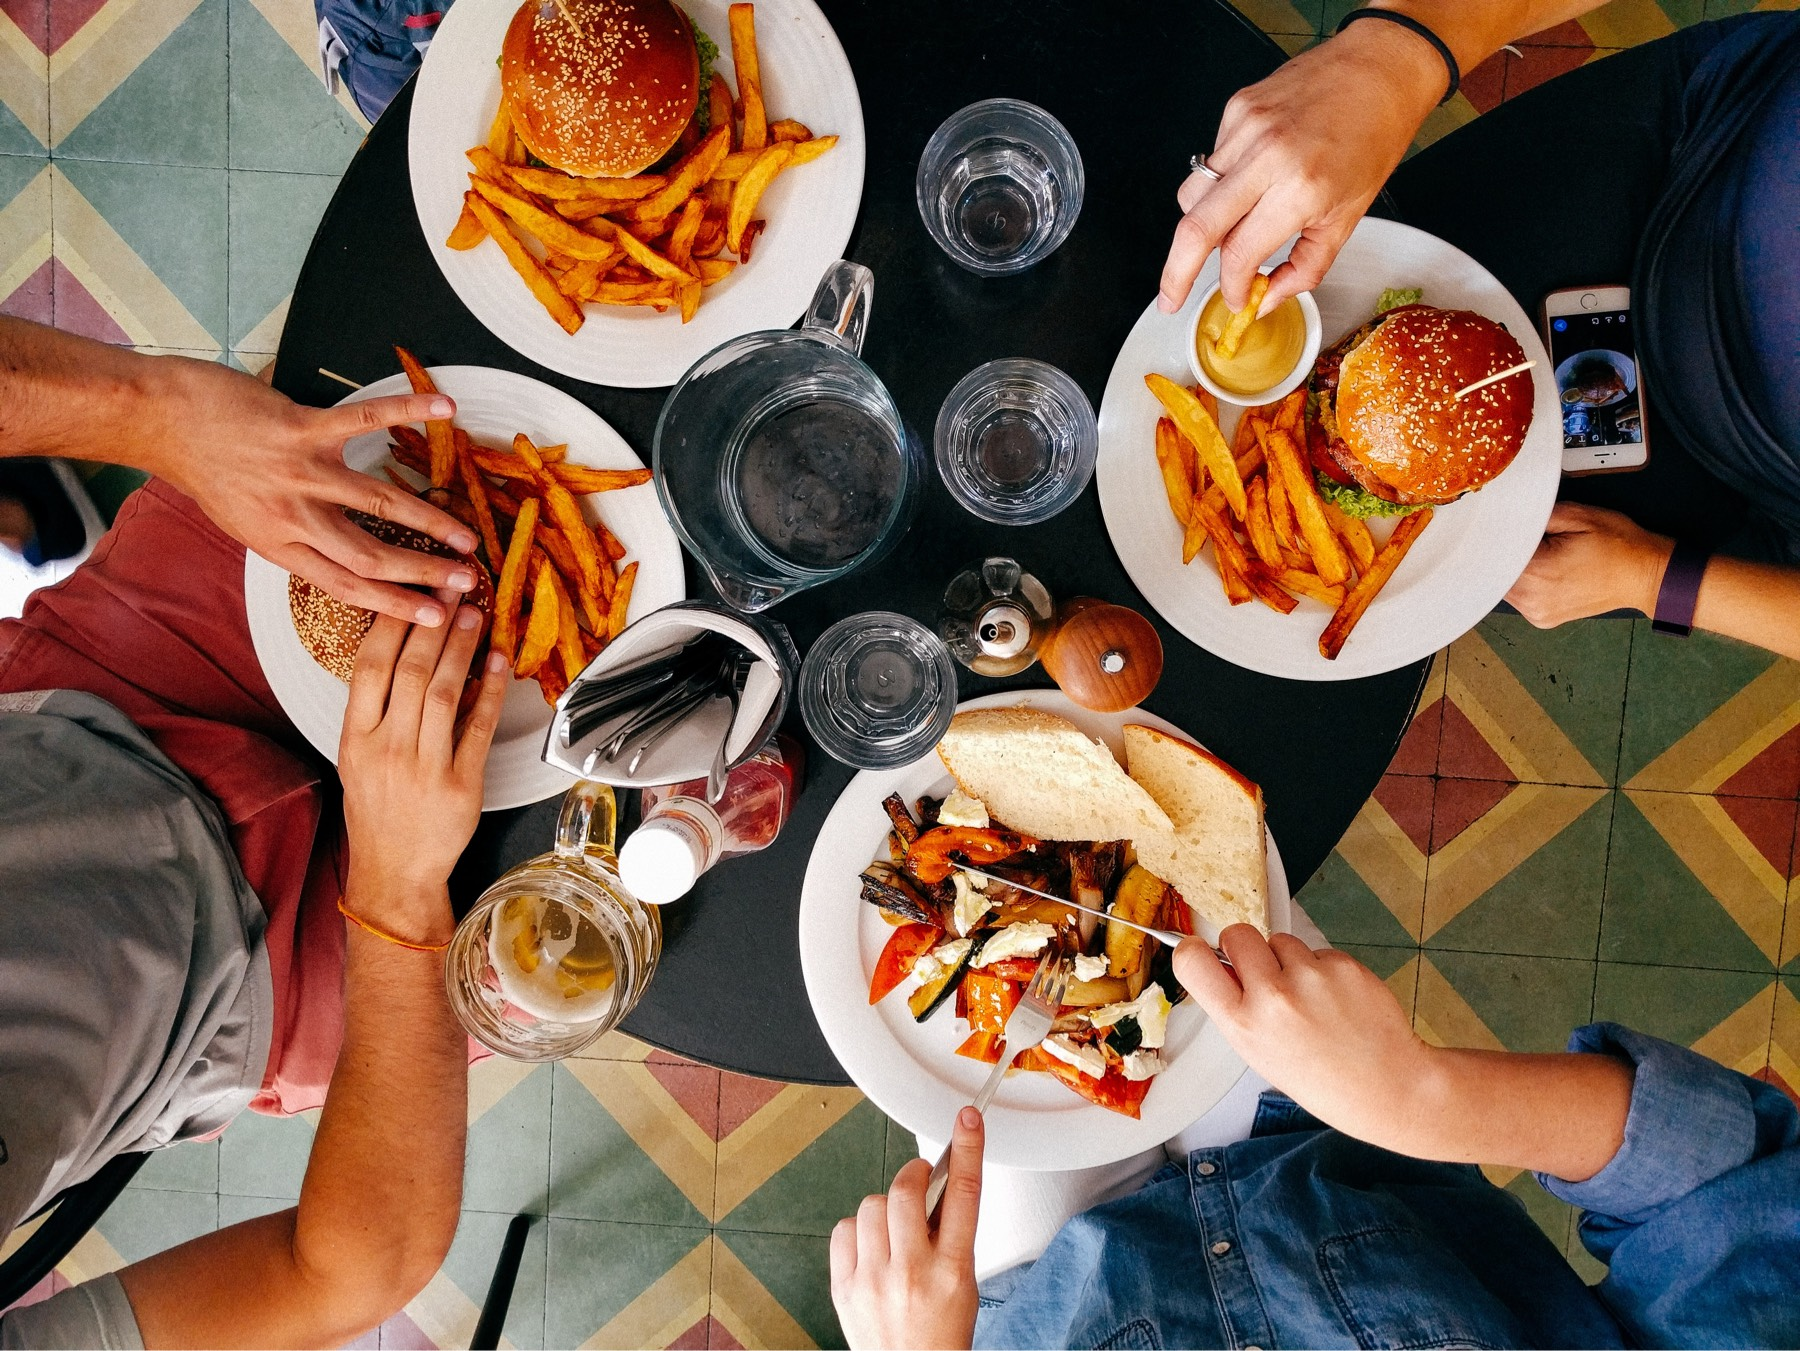 Overhead view of people eating and drinking at a restaurant